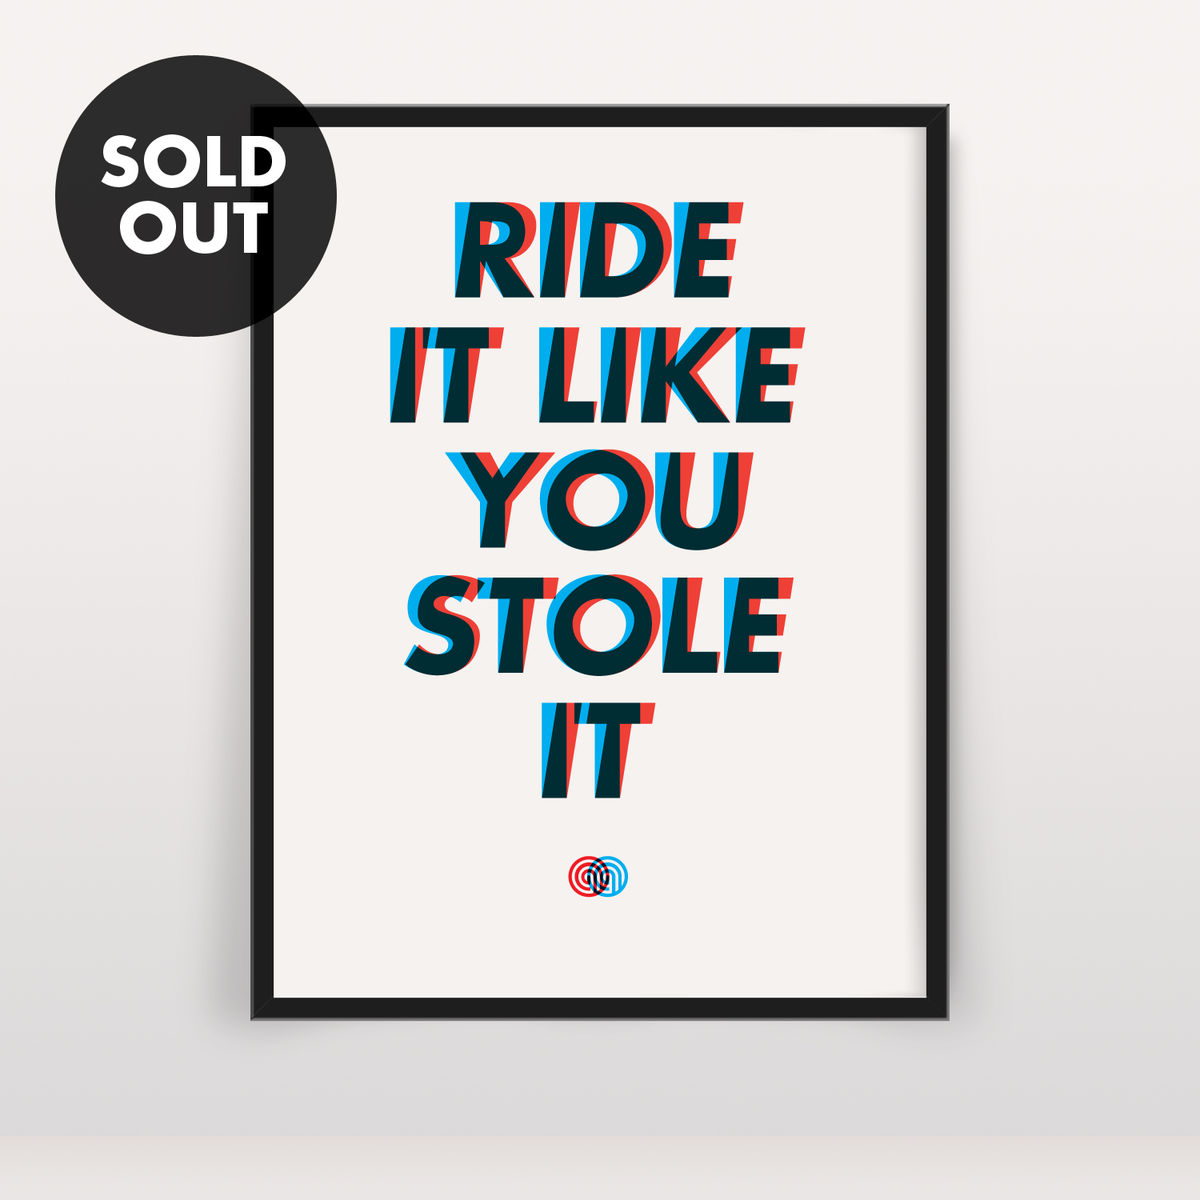 Ride It Like You Stole It - Screen Print Edition 2 - product image